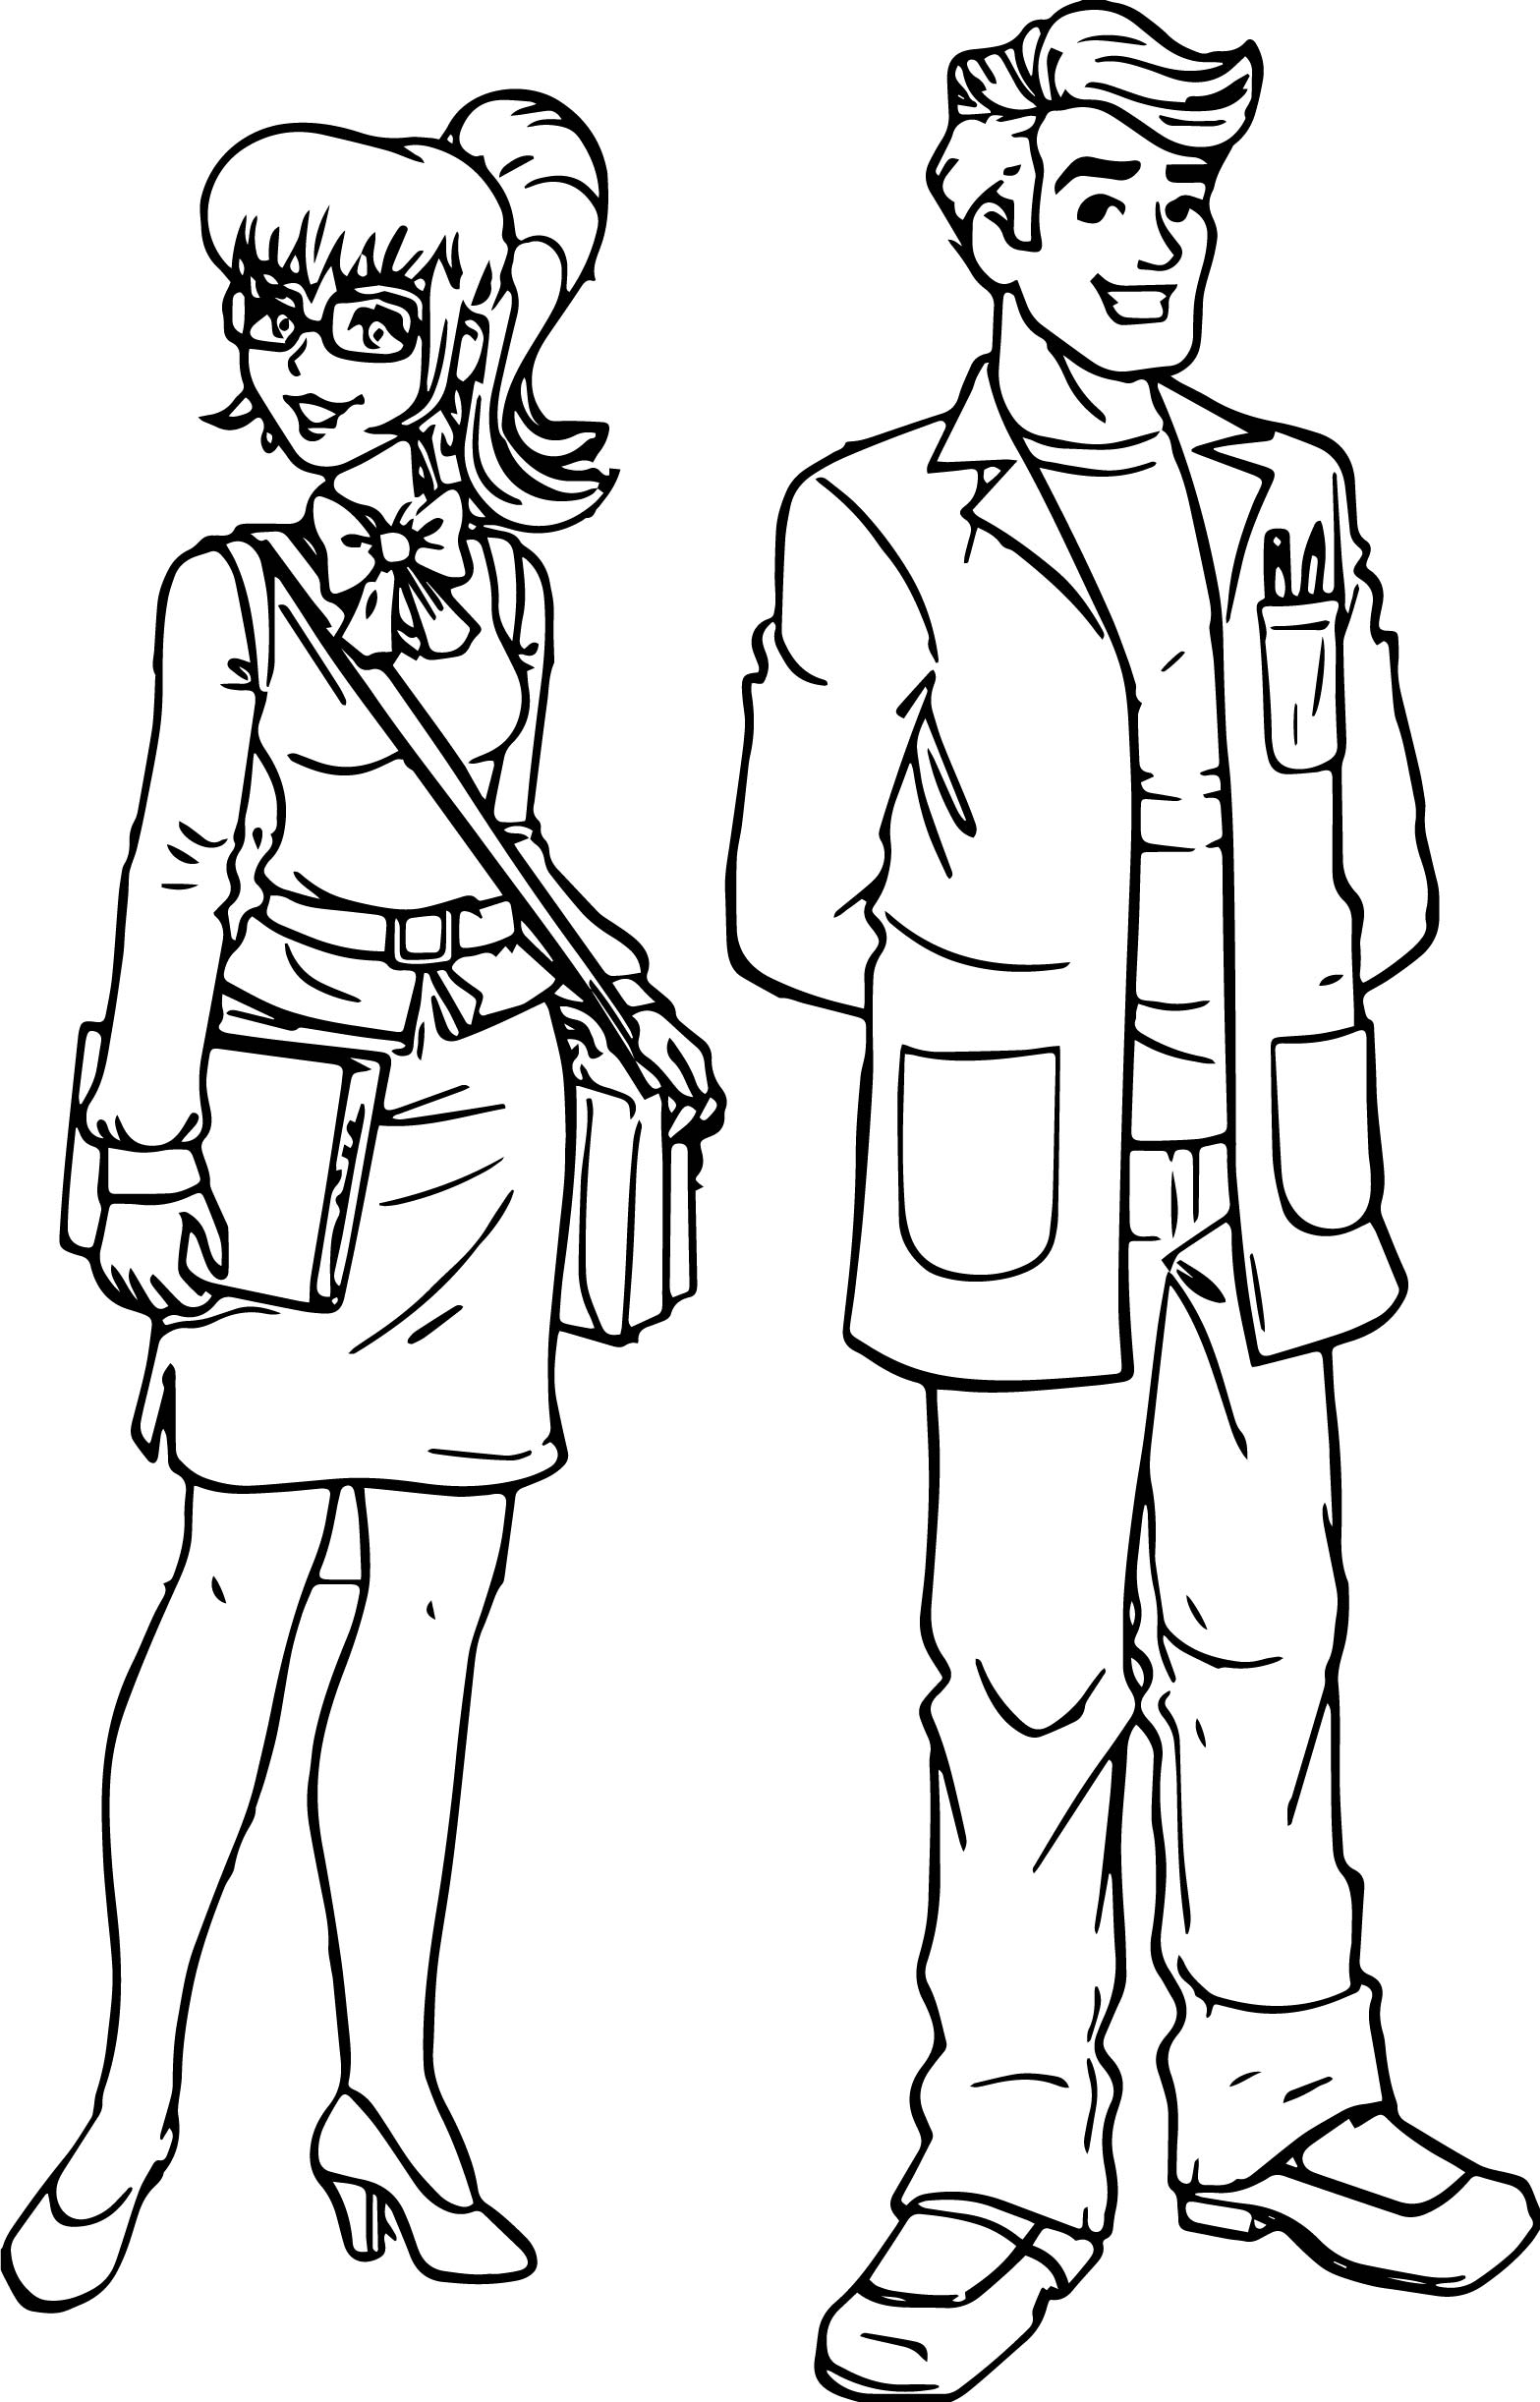 Coloring pages woman - Woman Teacher Monica And Man Teacher Coloring Page